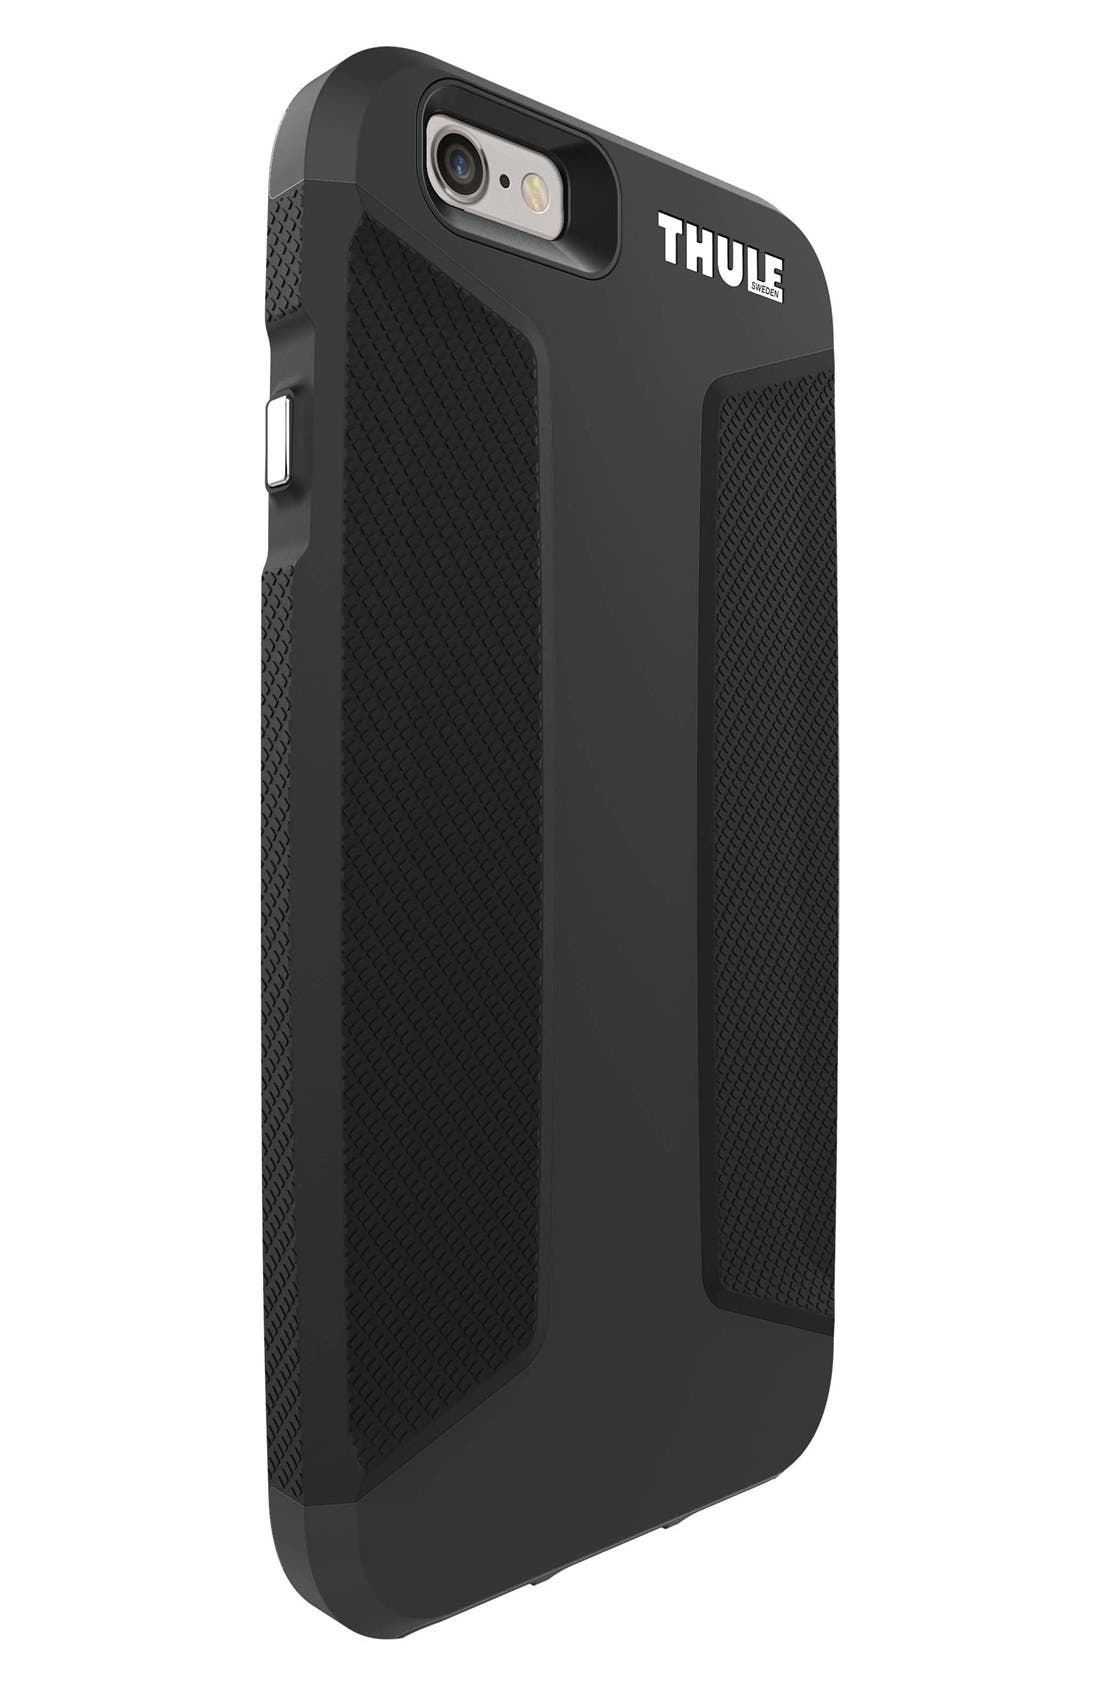 Thule Atmos X4 iPhone 6/6s Case